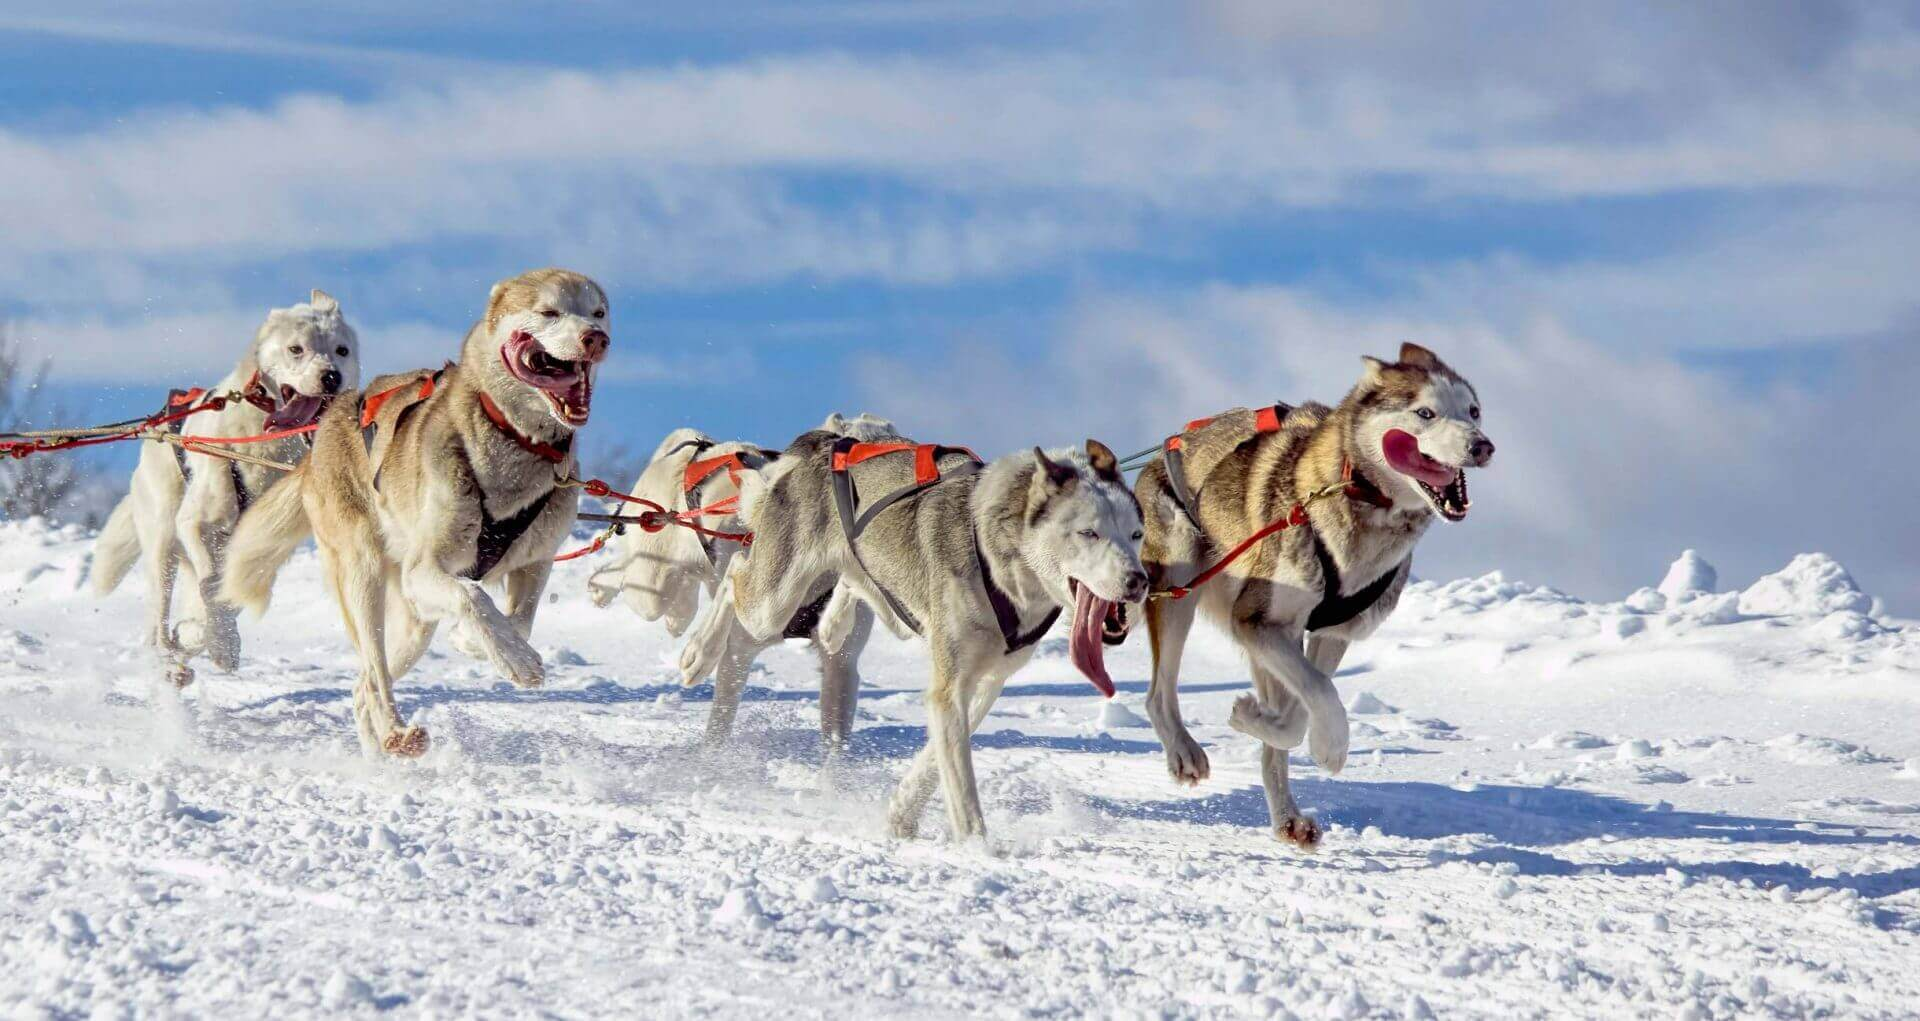 dog sled team running through snow